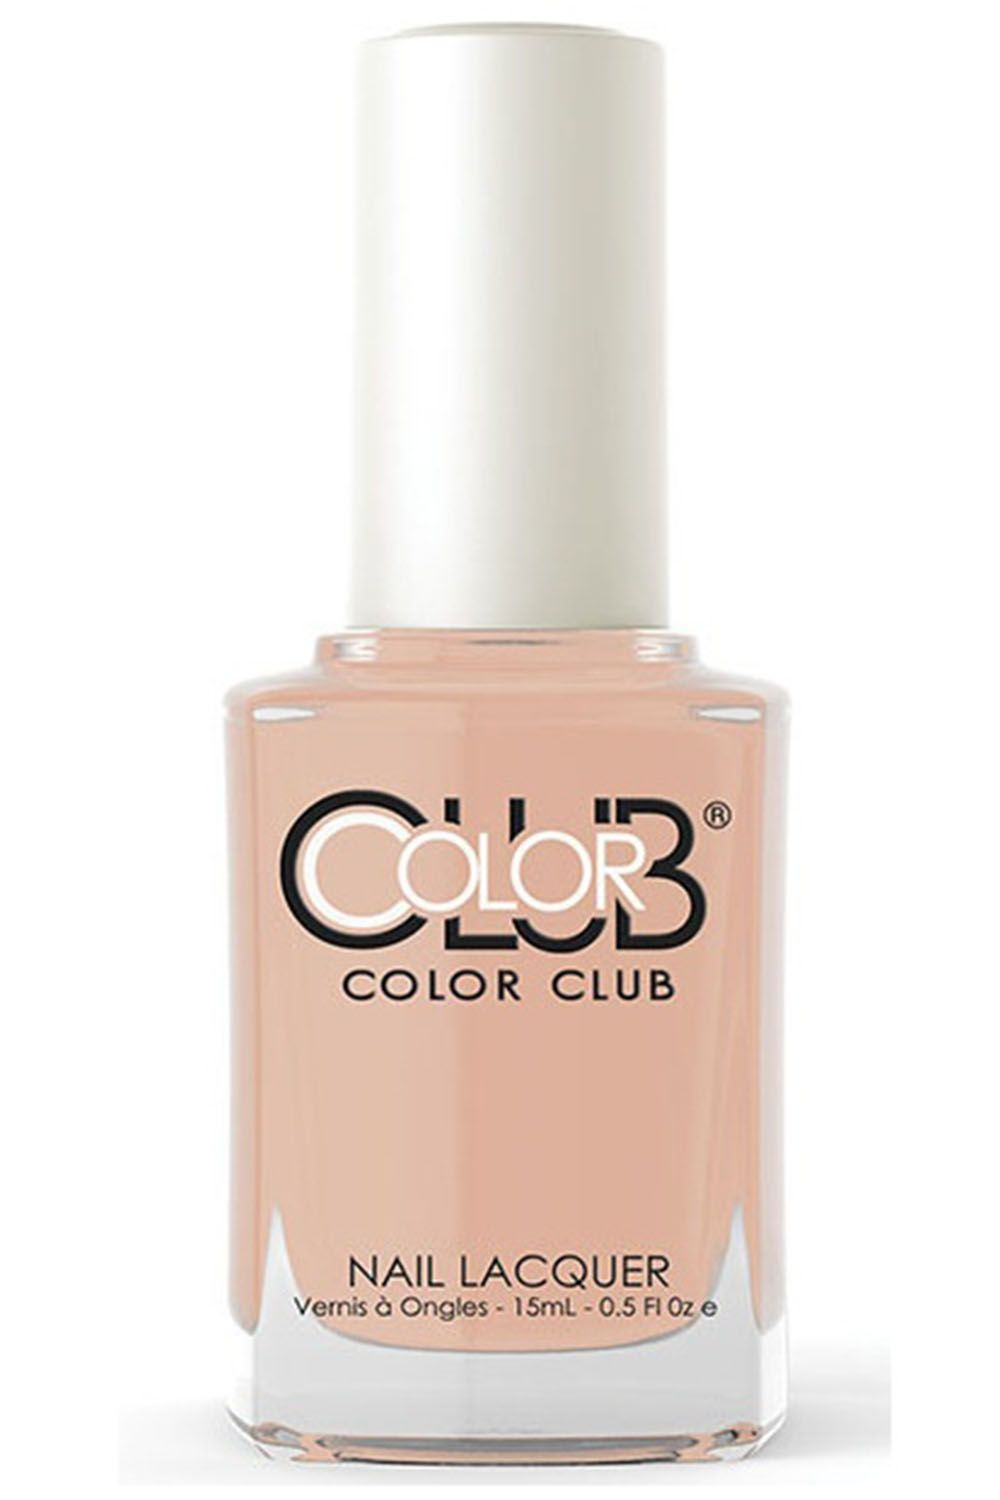 20 Best Nude Nail Polish Colors - Neutral Nail Colors for Every Skin ...